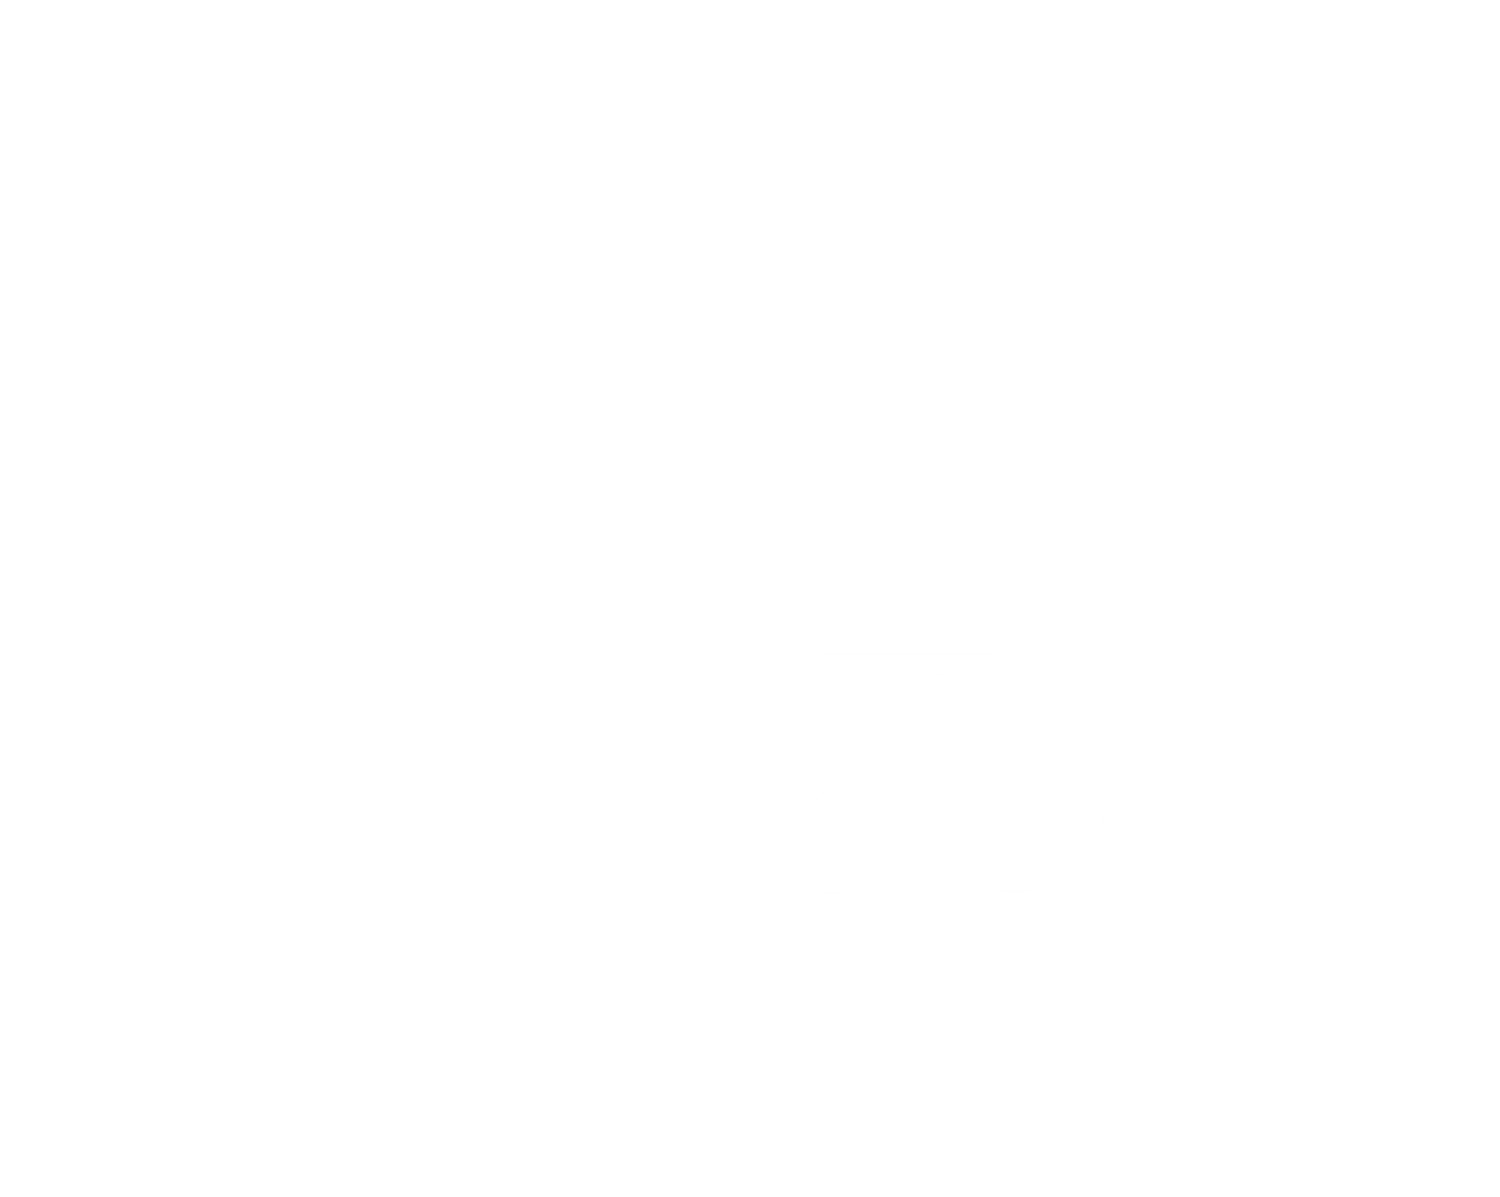 Household Collective